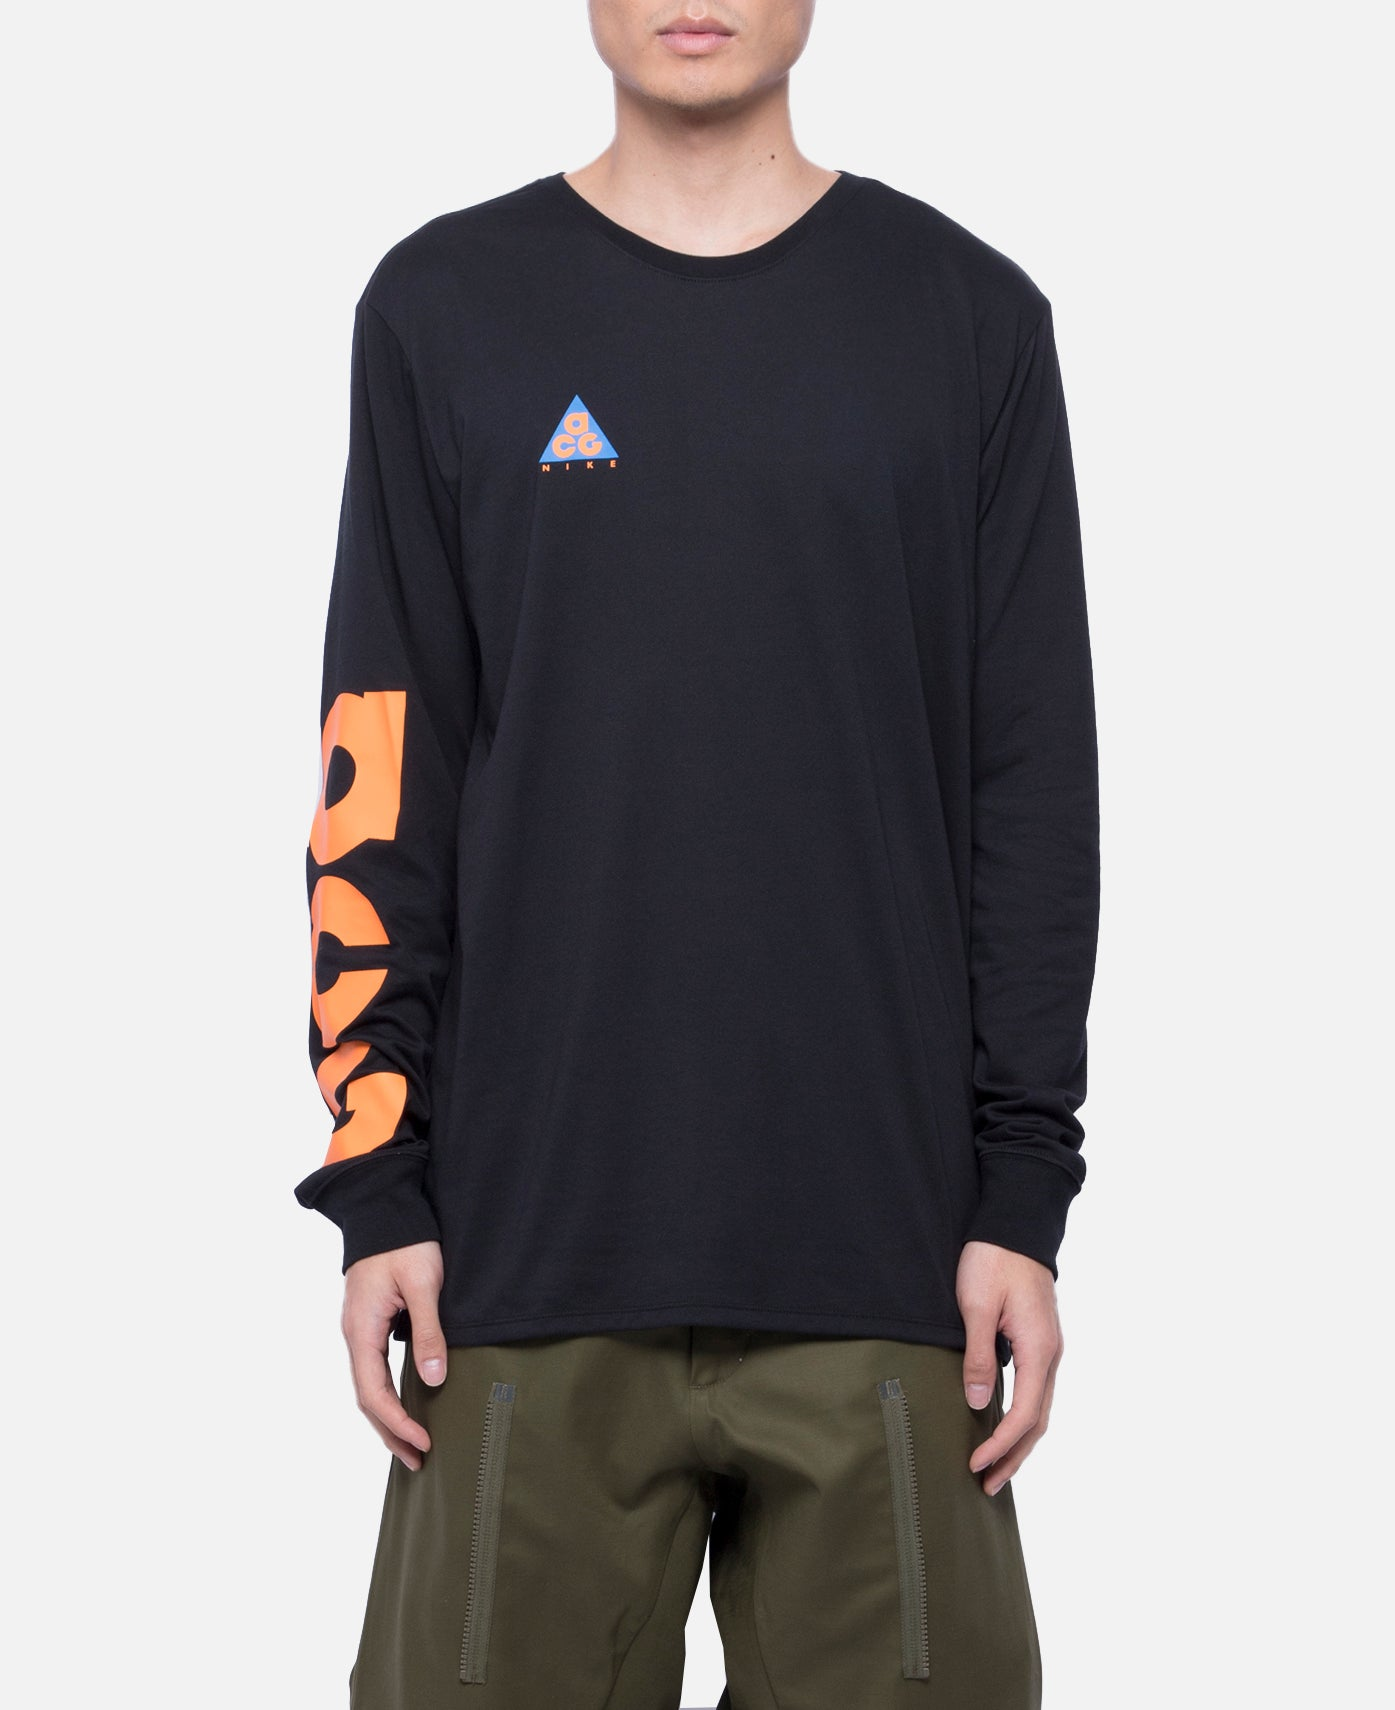 ACG L/S T-Shirt (Black)